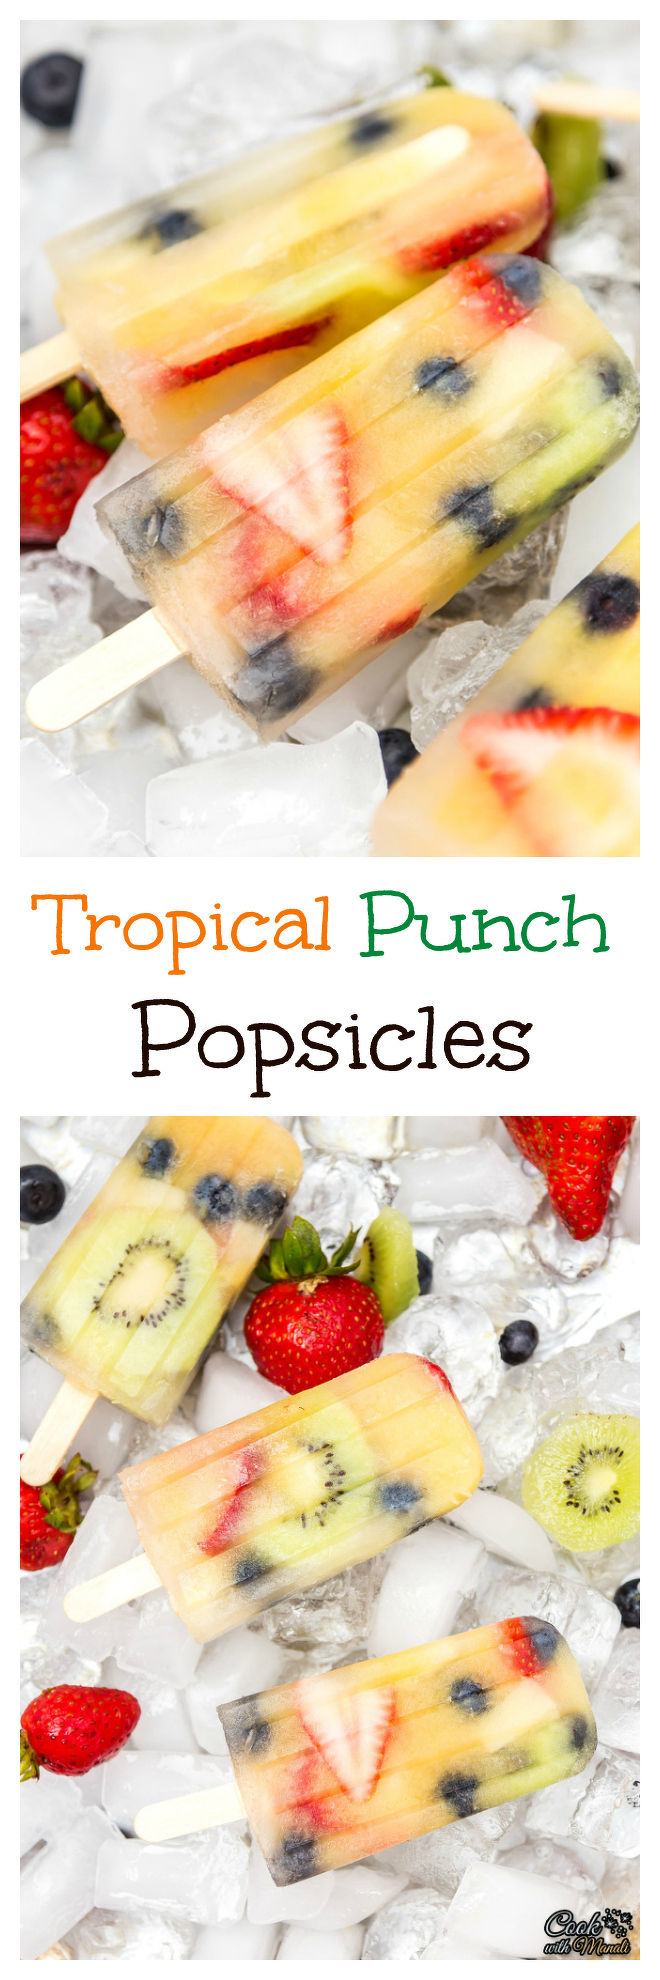 Tropical Punch Popsicles Collage-nocwm